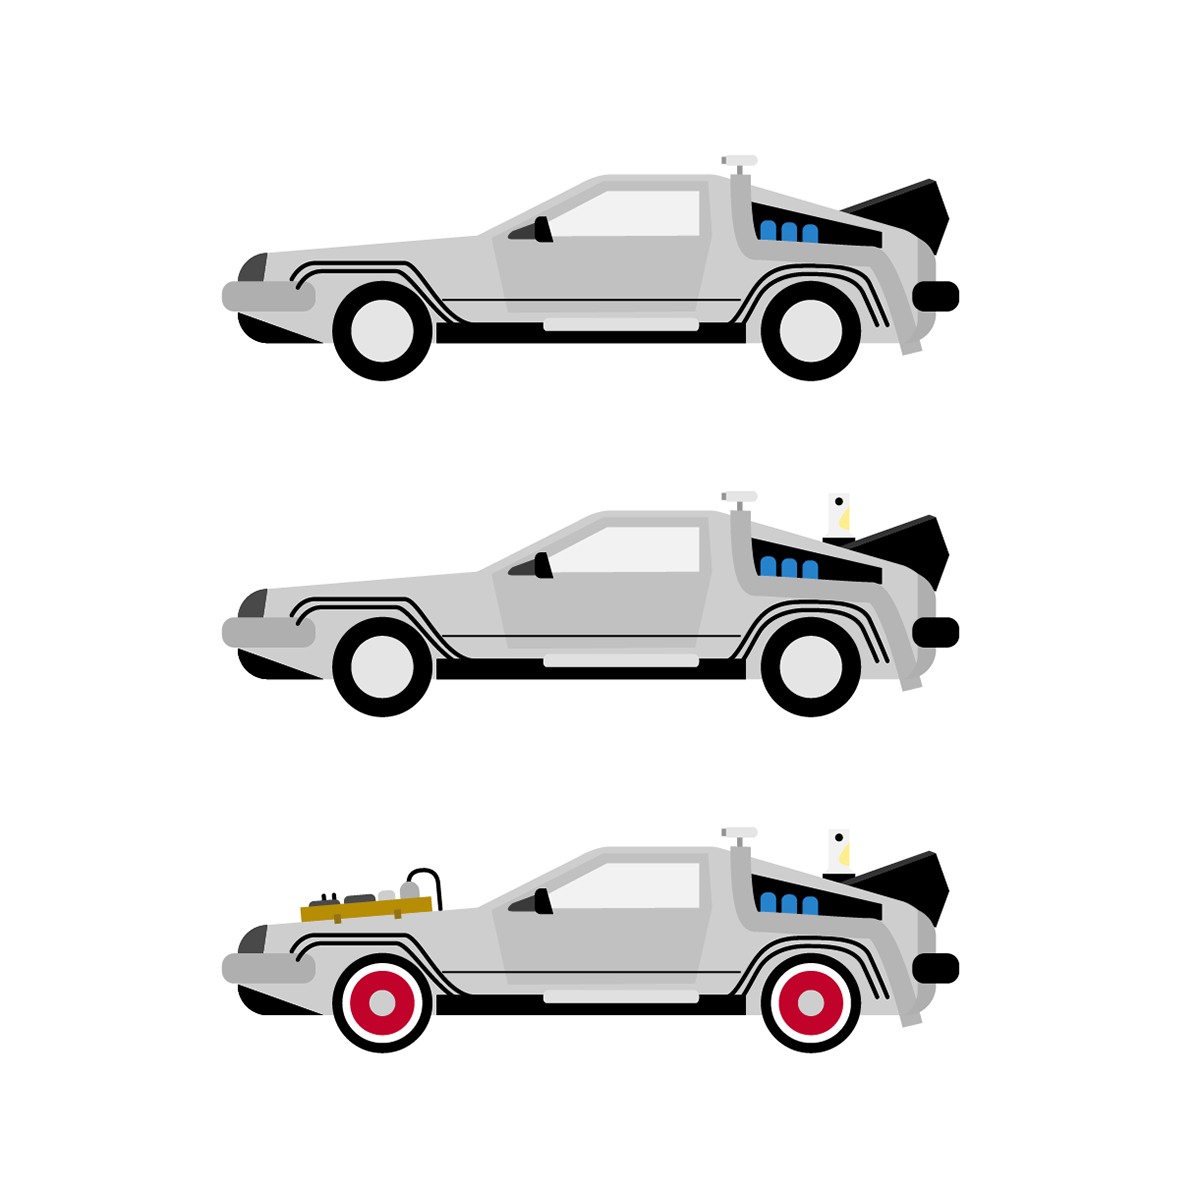 Back to the future car clipart image download Delorean - Back to the Future Trilogy on Behance image download